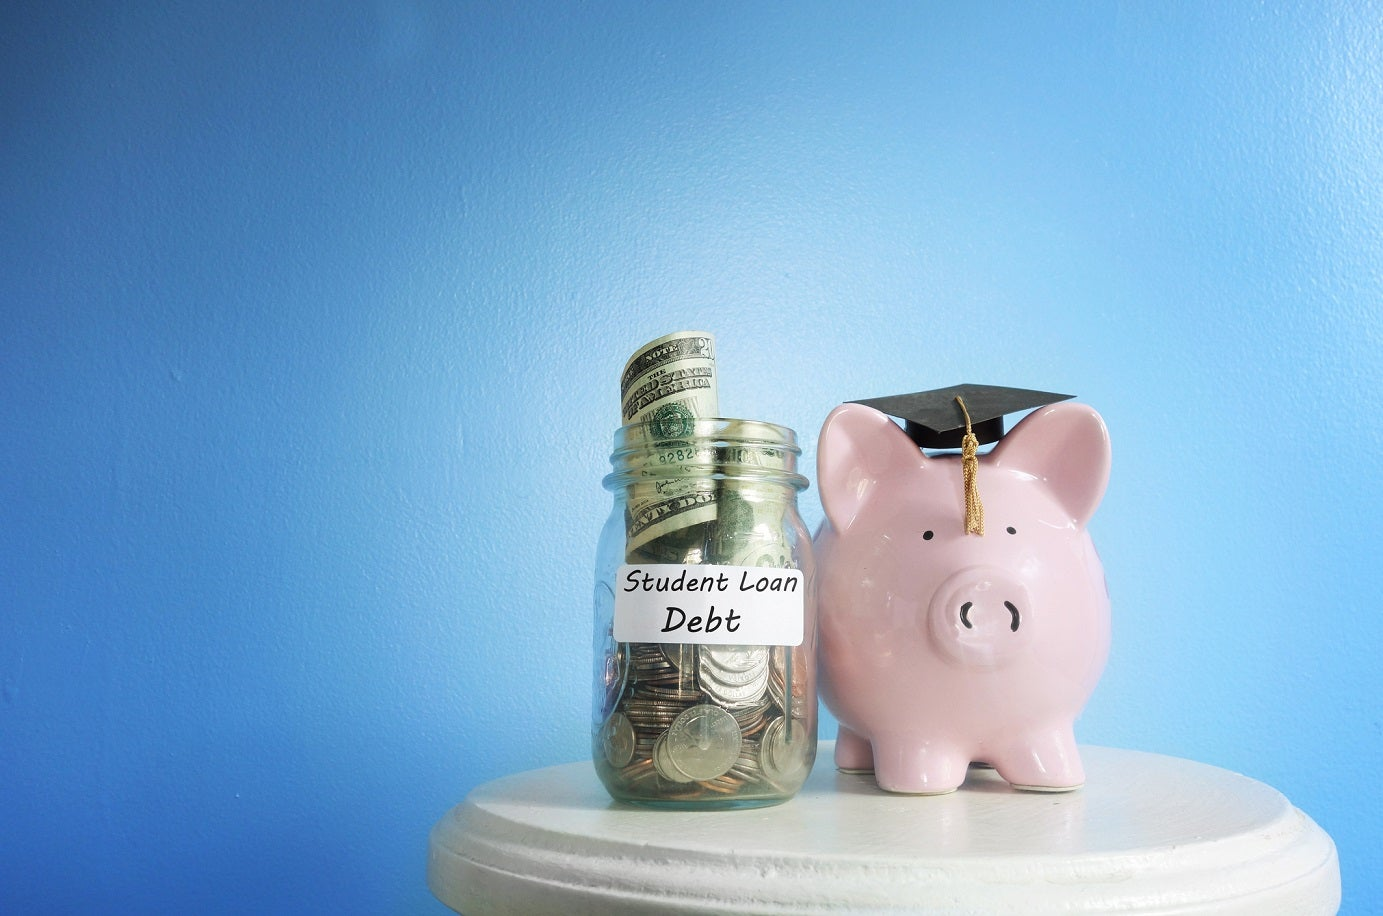 Piggy bank in graduation cap next to a glass jar full of money labeled Student Loan Debt.